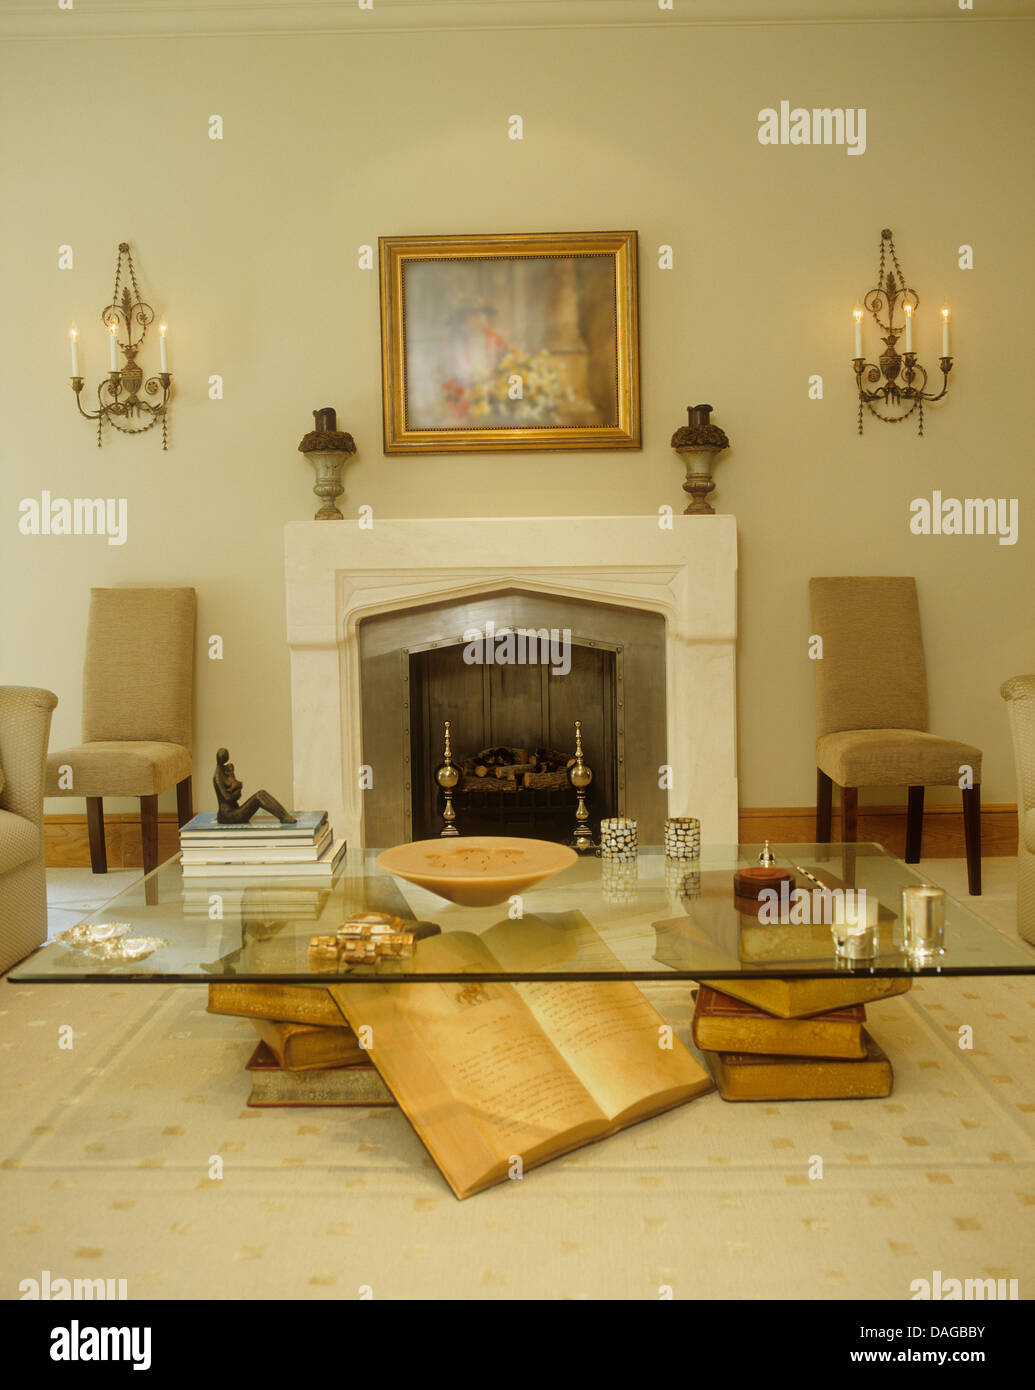 wall glass living room tables. Glass coffee table and book sculpture in modern living room with wall  lights on either side of stone fireplace